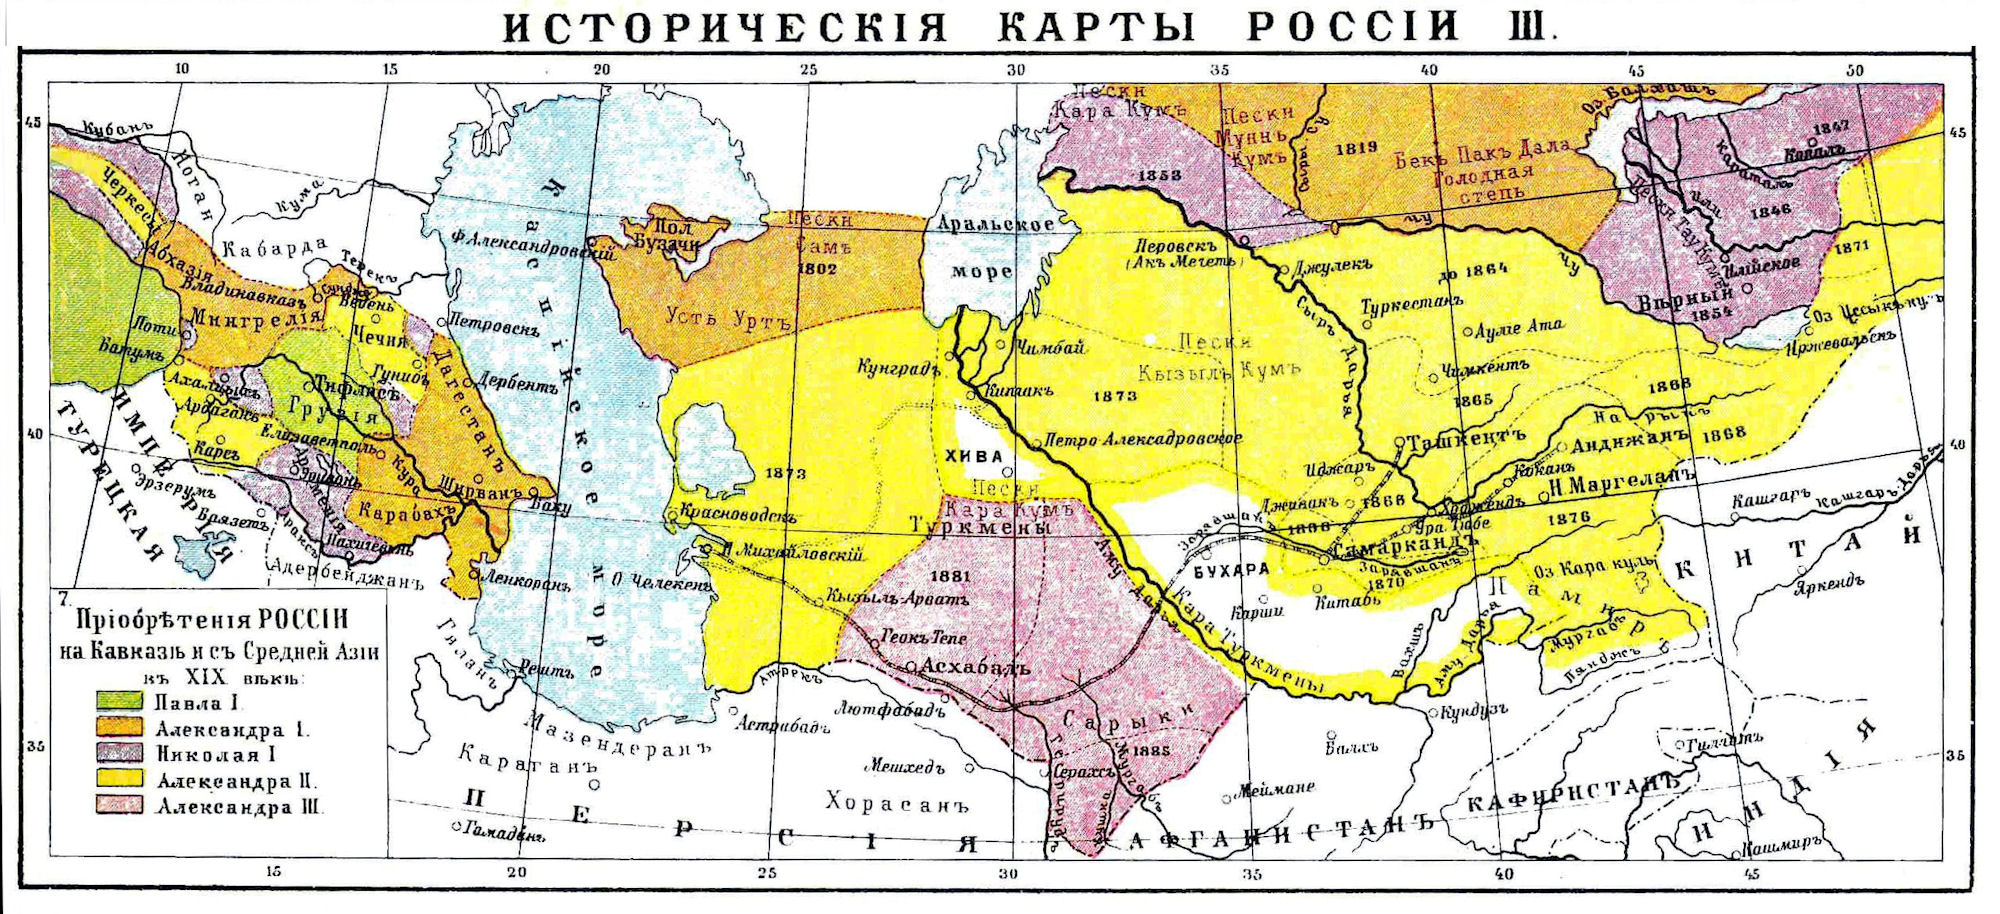 a history of russia History of russia timeline timeline description: russia is the largest country in the world in terms of surface area, spanning nine time zones and covering more than.